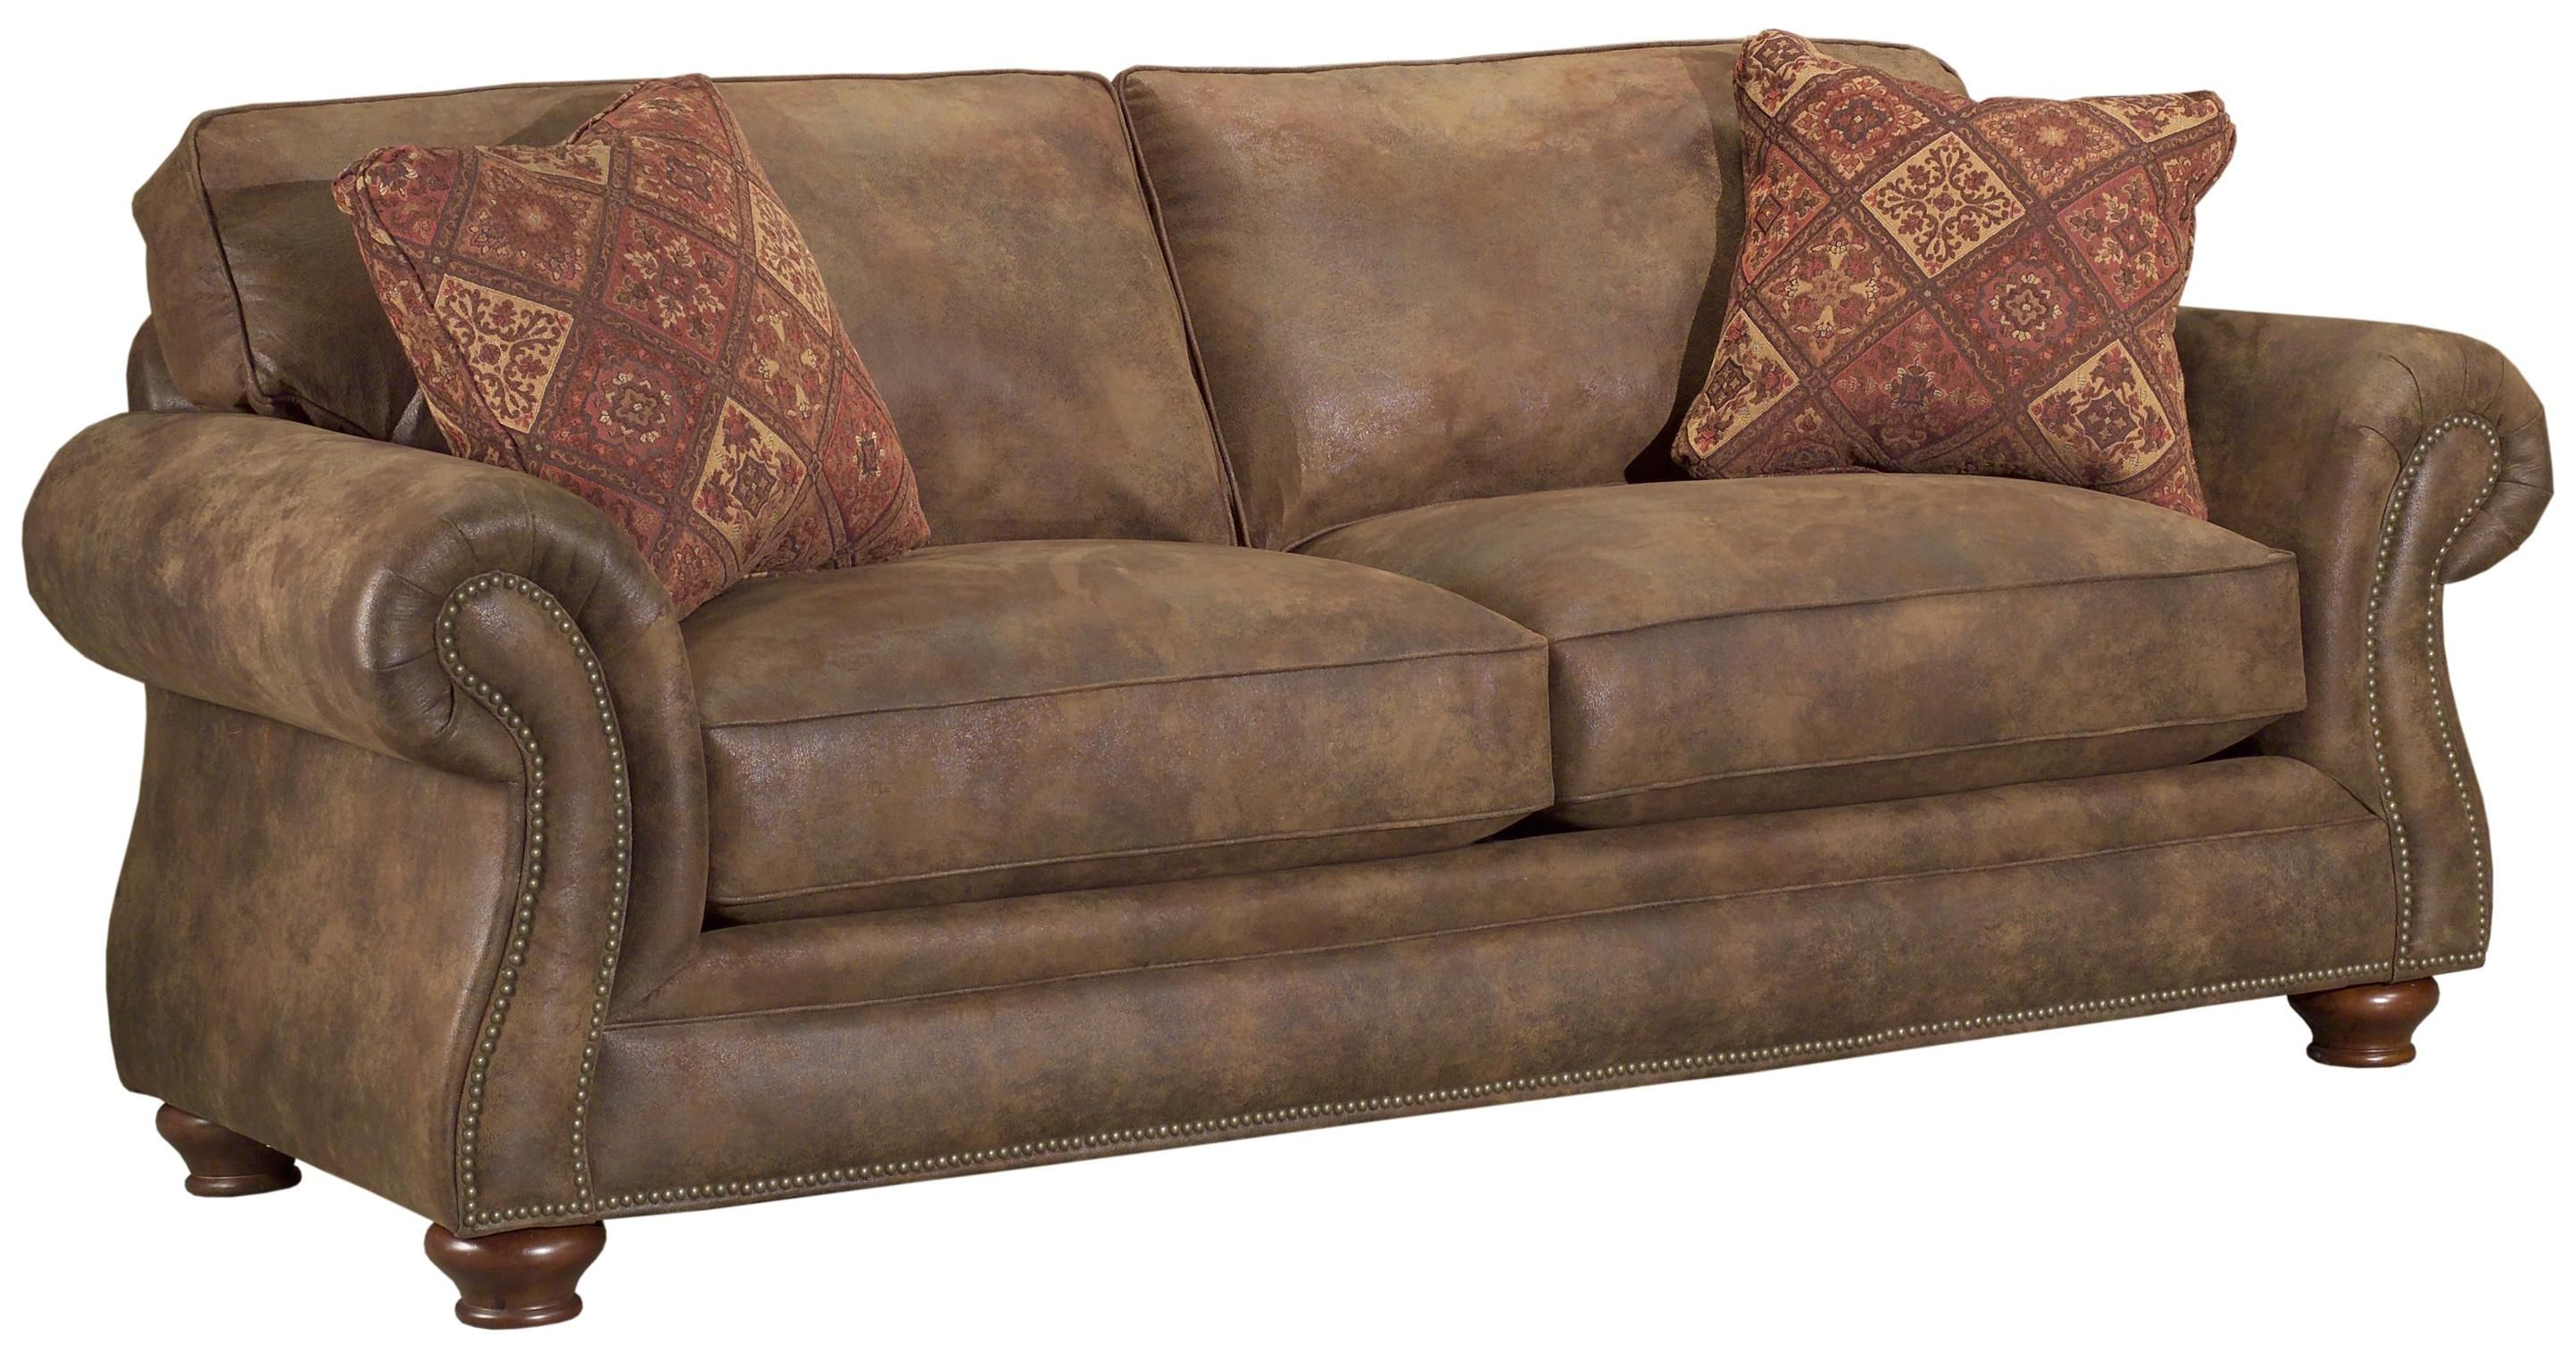 Incredible Laramie Sofa Sleeper With Nail Head Trim By Broyhill Forskolin Free Trial Chair Design Images Forskolin Free Trialorg